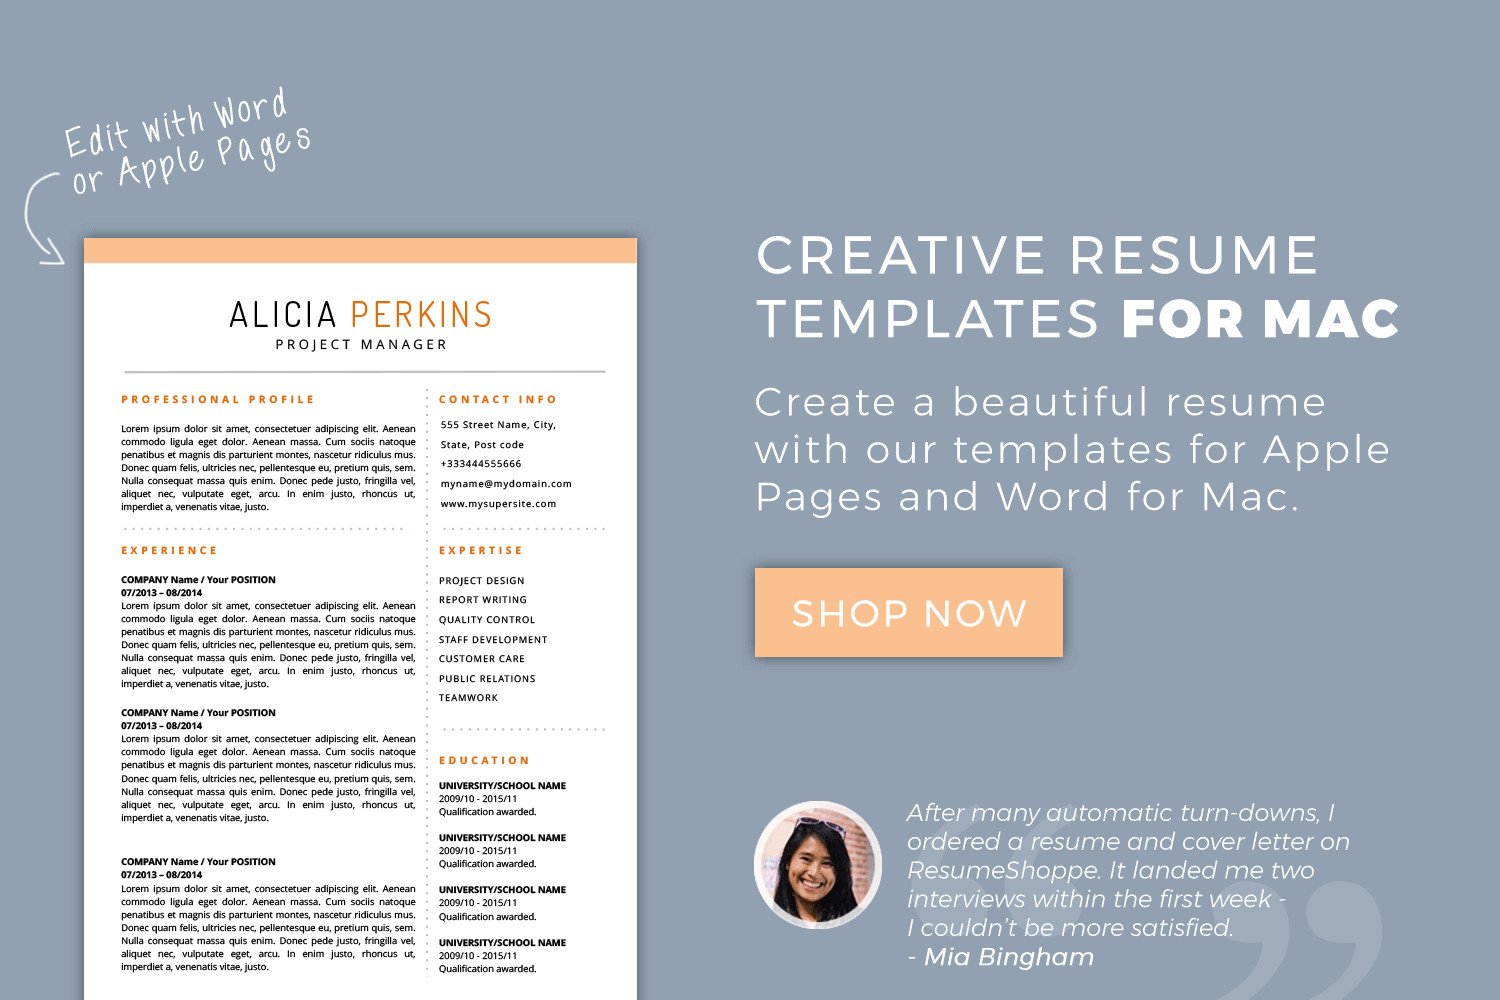 Mac Pages Resume Templates Resume Templates for Mac Word & Apple Pages Instant